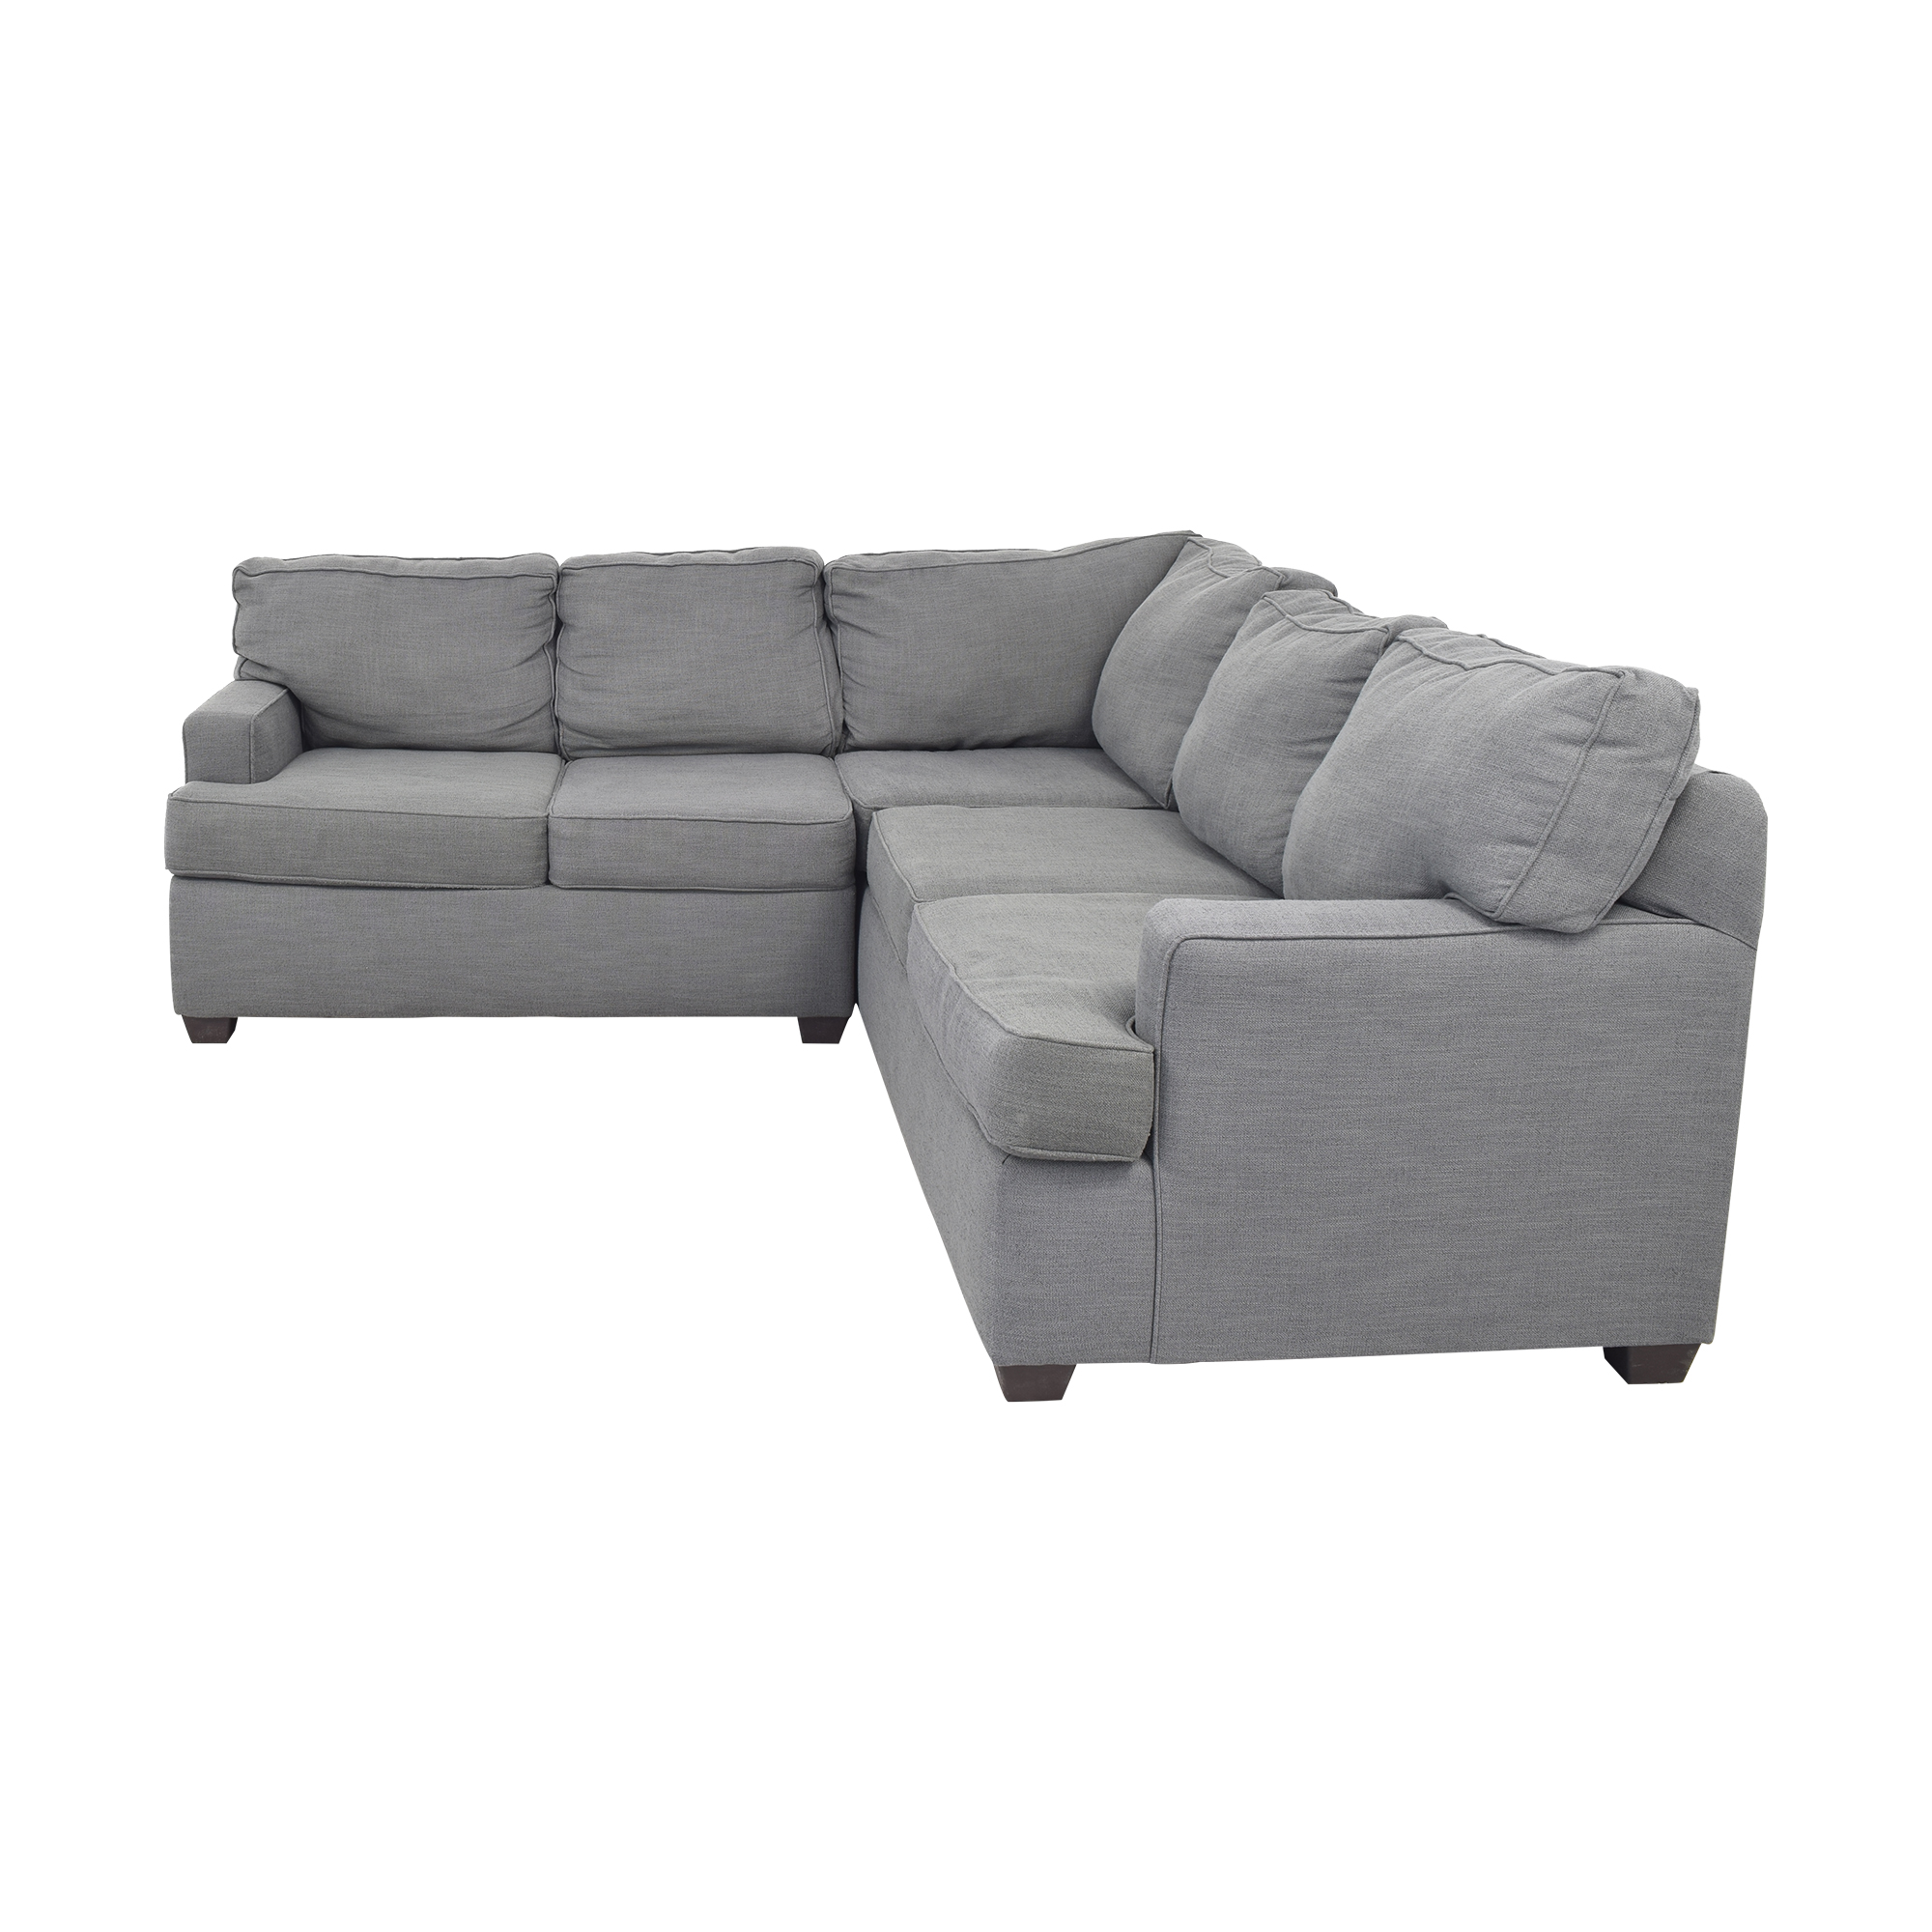 buy Joss & Main Right Hand Facing Sectional Joss & Main Sofas